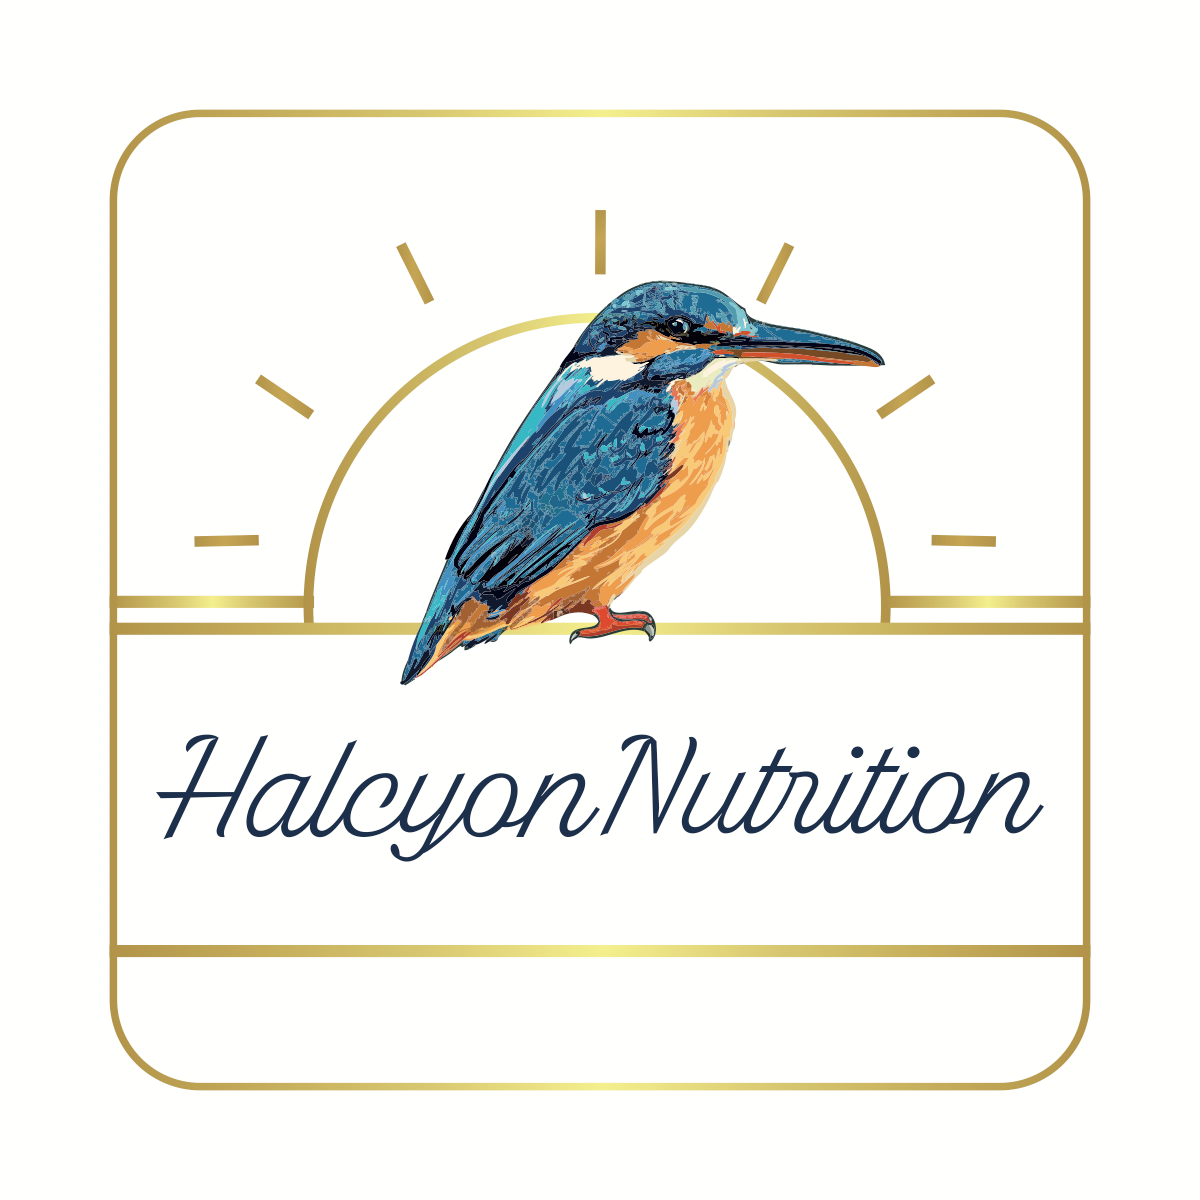 Logo Design for Food Product